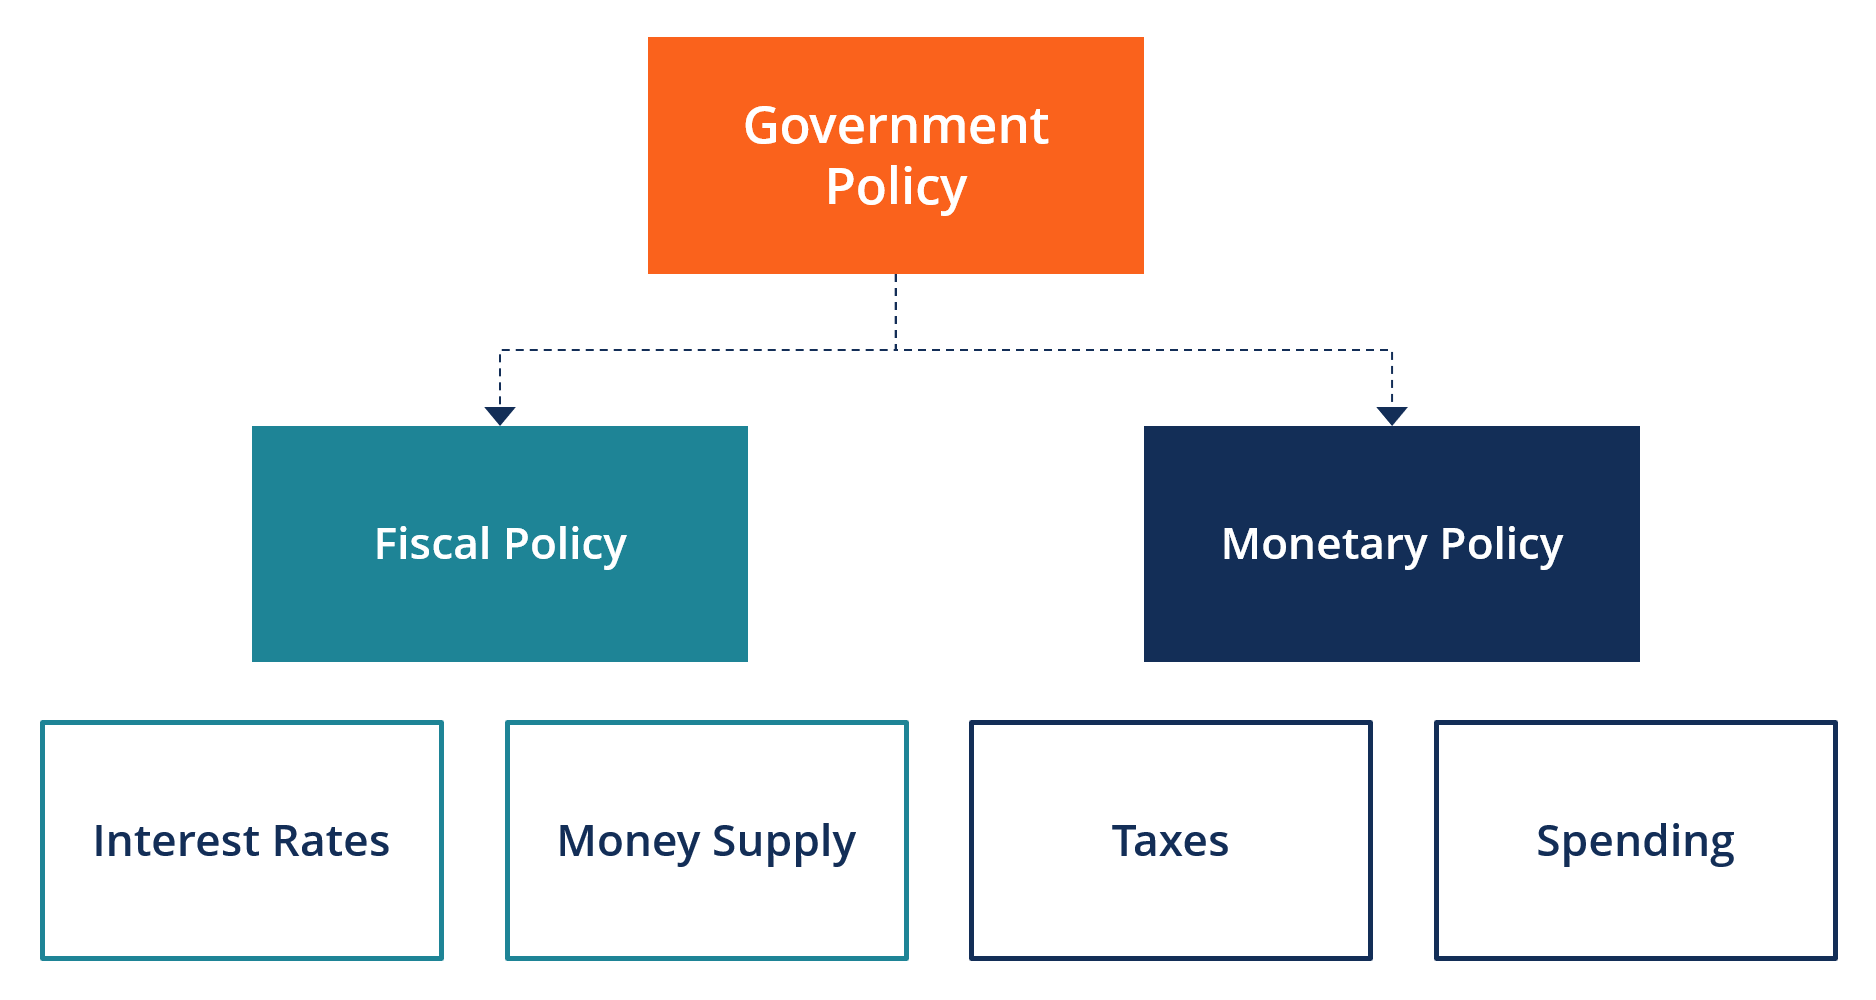 Fiscal Policy Diagram